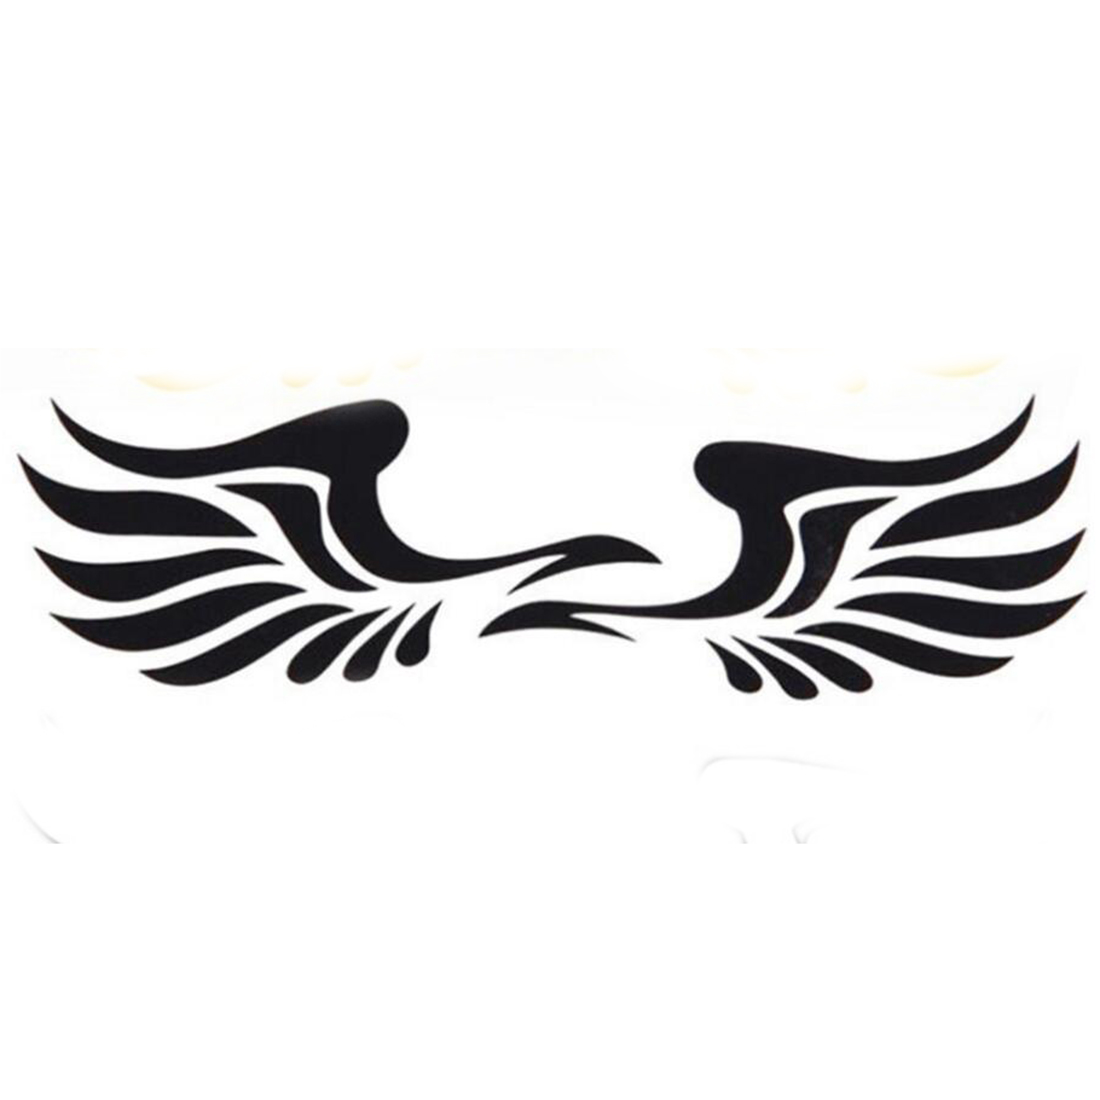 Car sticker design fire - Aliexpress Com Buy 2pcs New Design Personality Fire Wings Side Mirror Car Stickers Decorative Stickers Car Styling Free Shipping From Reliable Car Styling